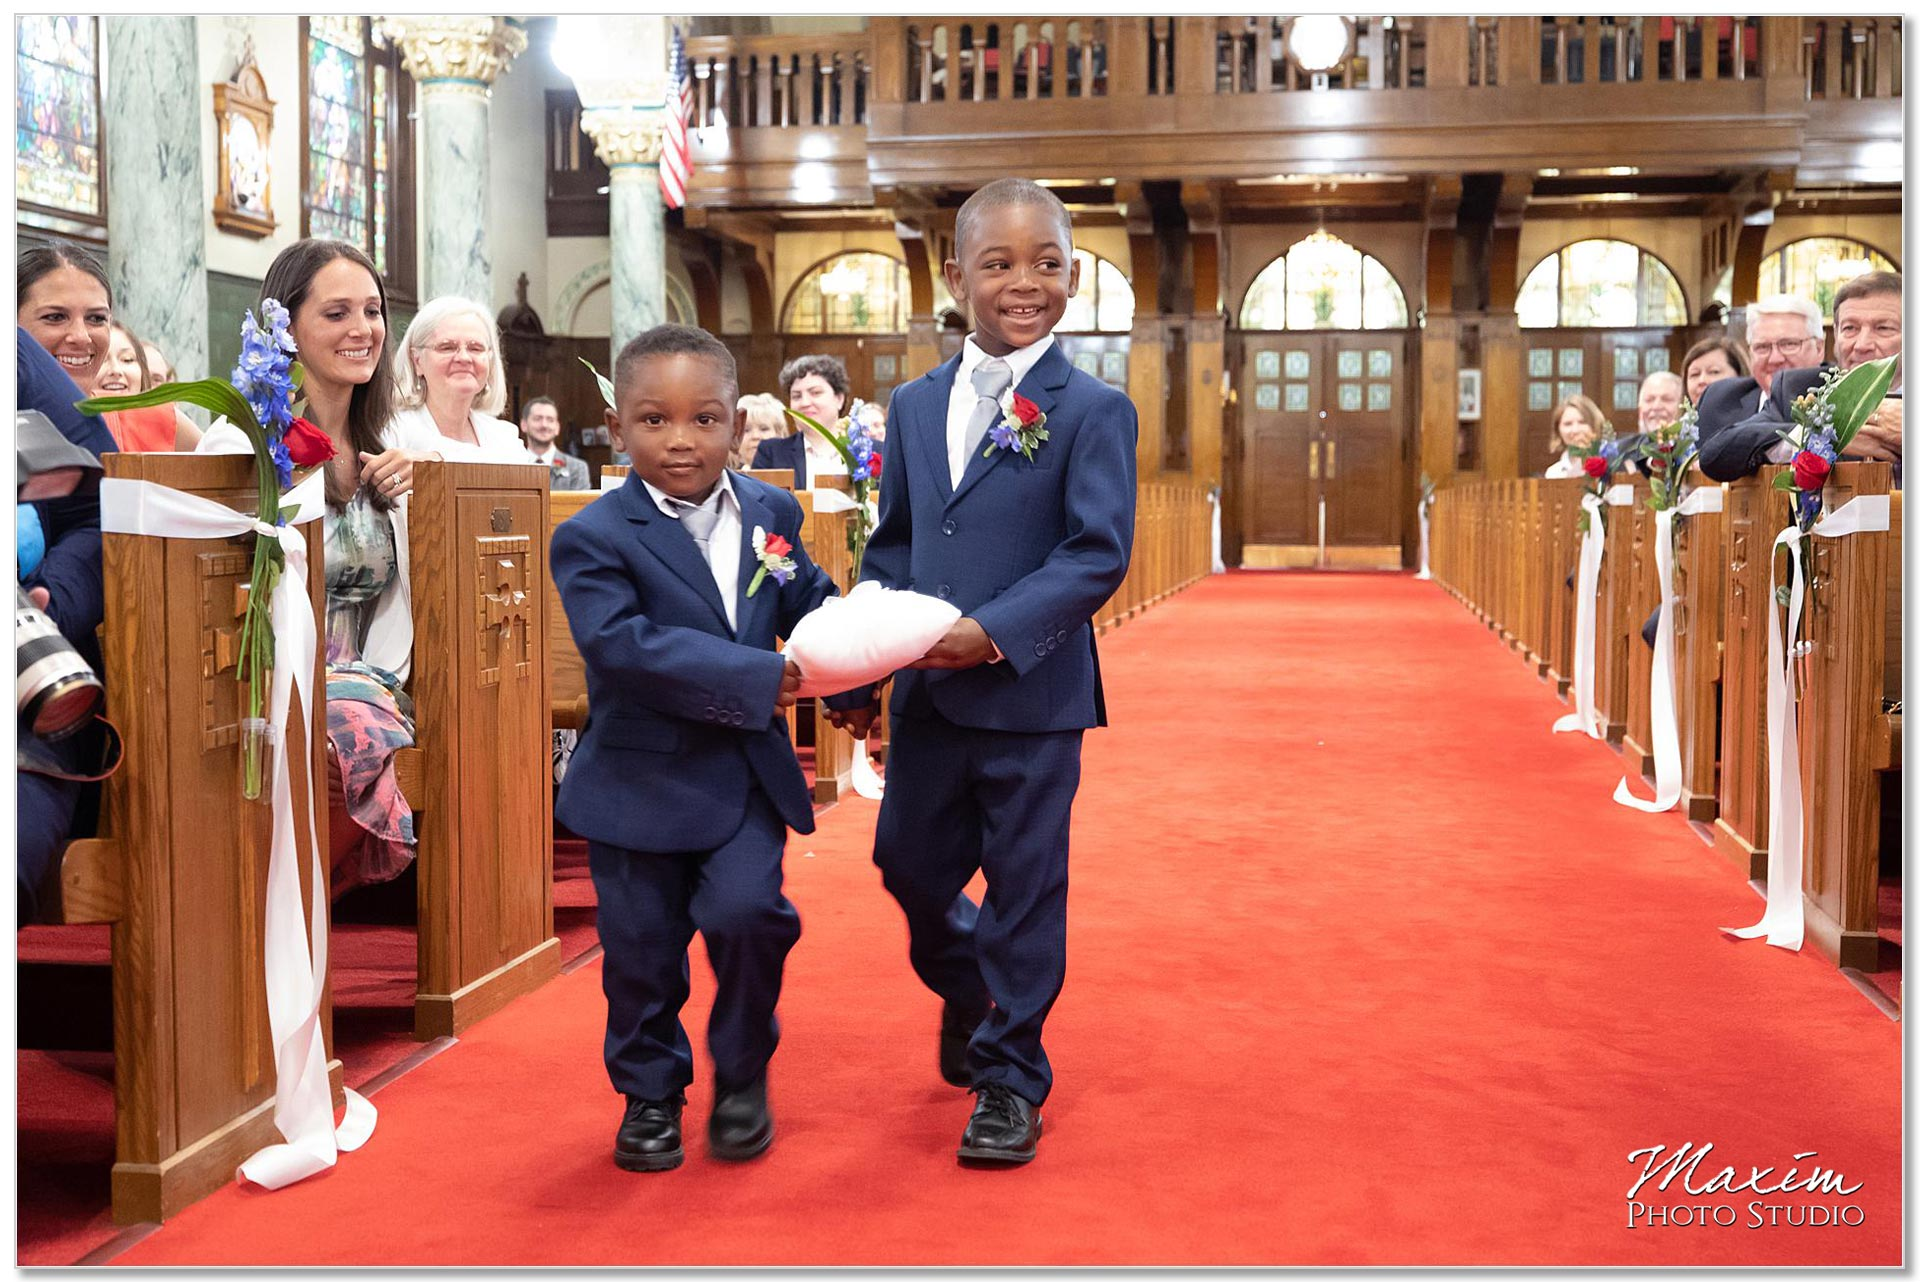 St. Joseph Catholic Church Ceremony Ring bearers